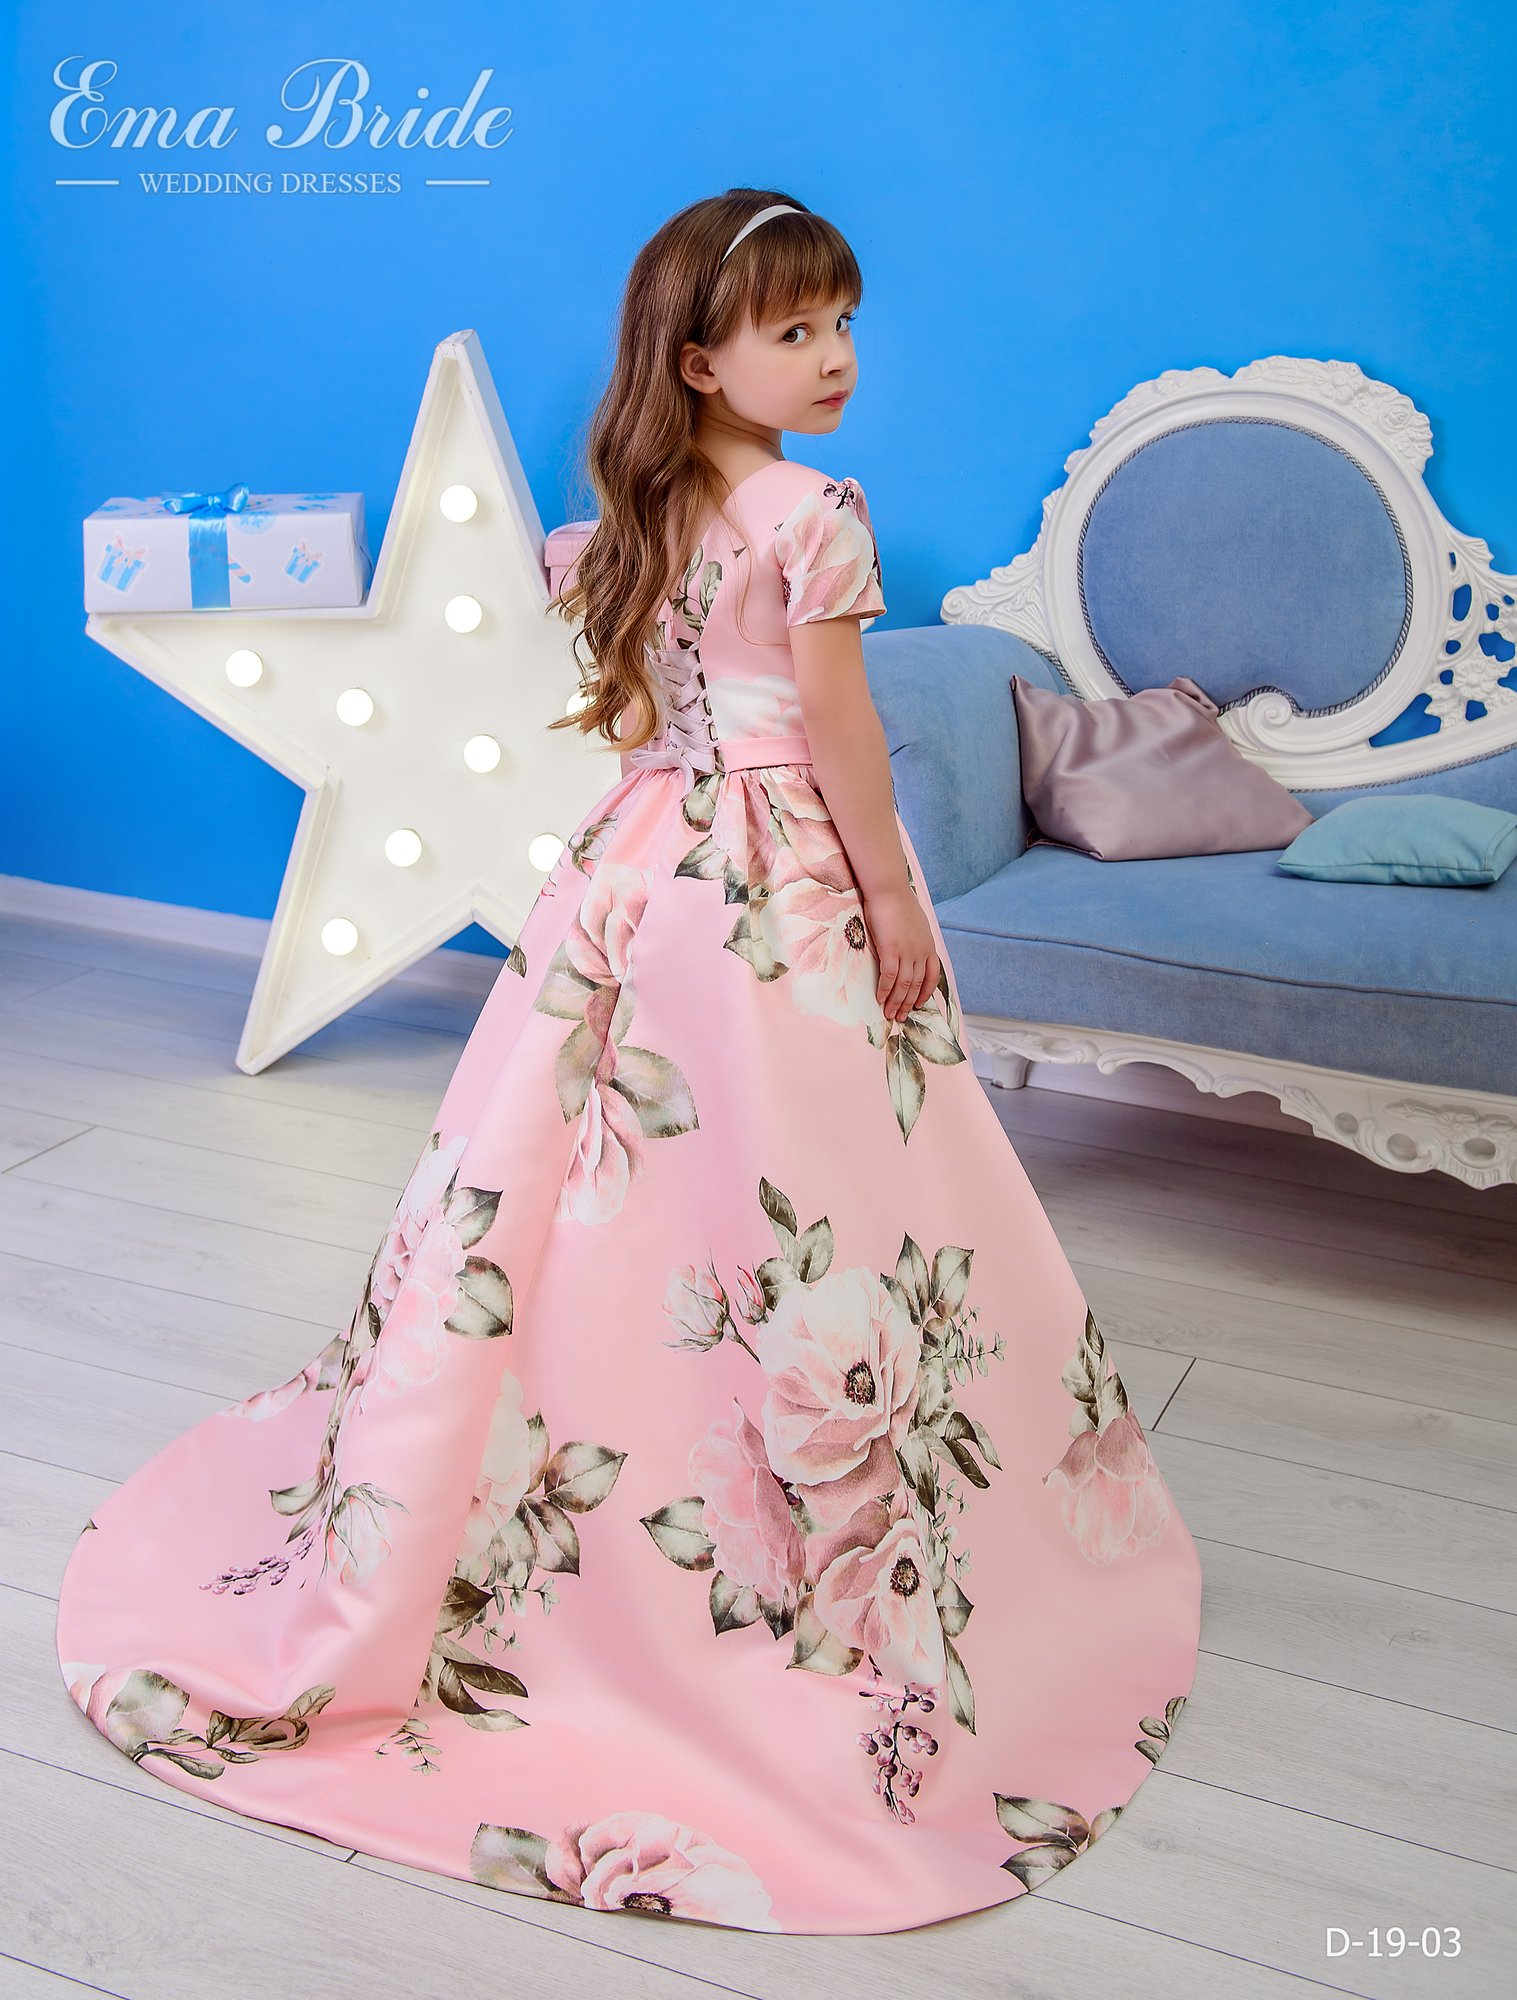 Children's dress by EmaBride D-19-03 2019-2